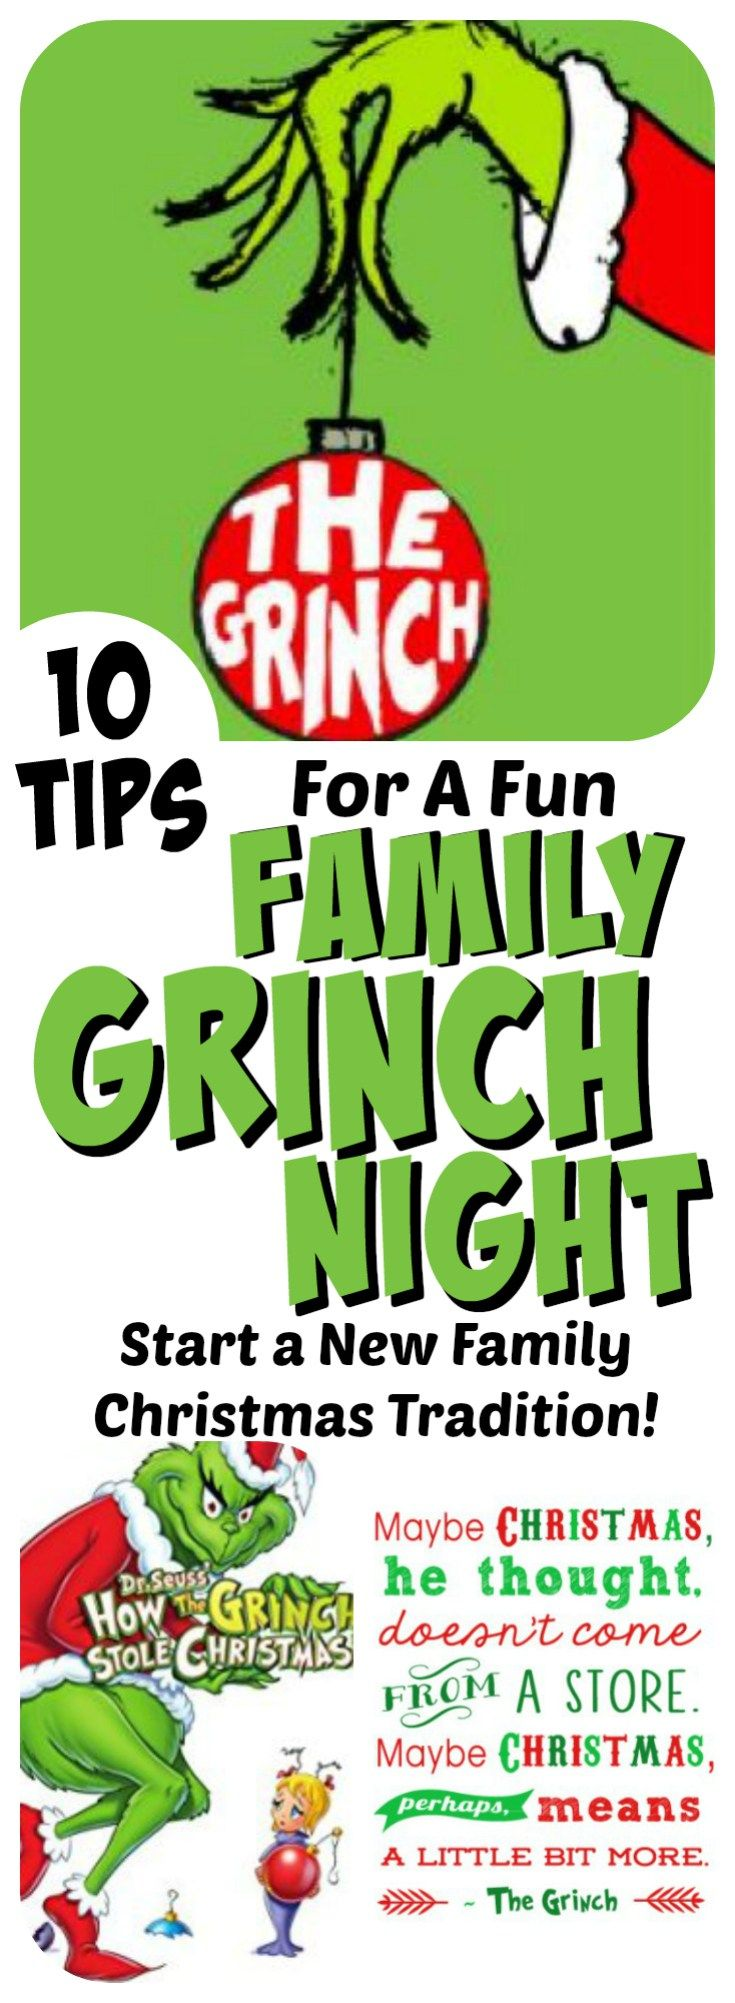 Ready to start a new Christmas Family Tradition? Check out these 10 tips for a fun family Grinch Movie Night! || Letters from Santa Holiday Blog